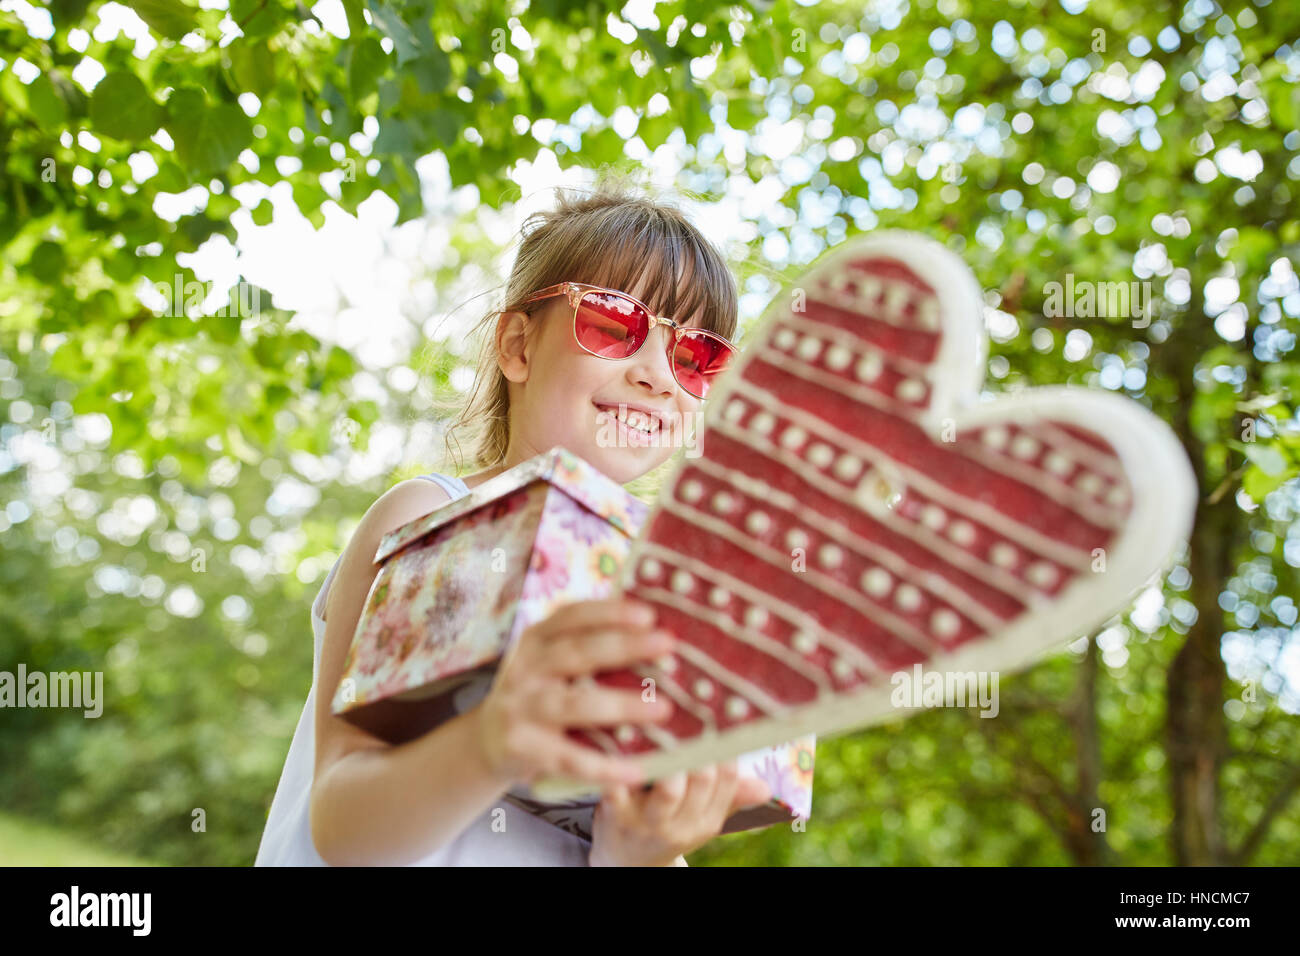 Girl at childrens birthday party in summer in the garden - Stock Image